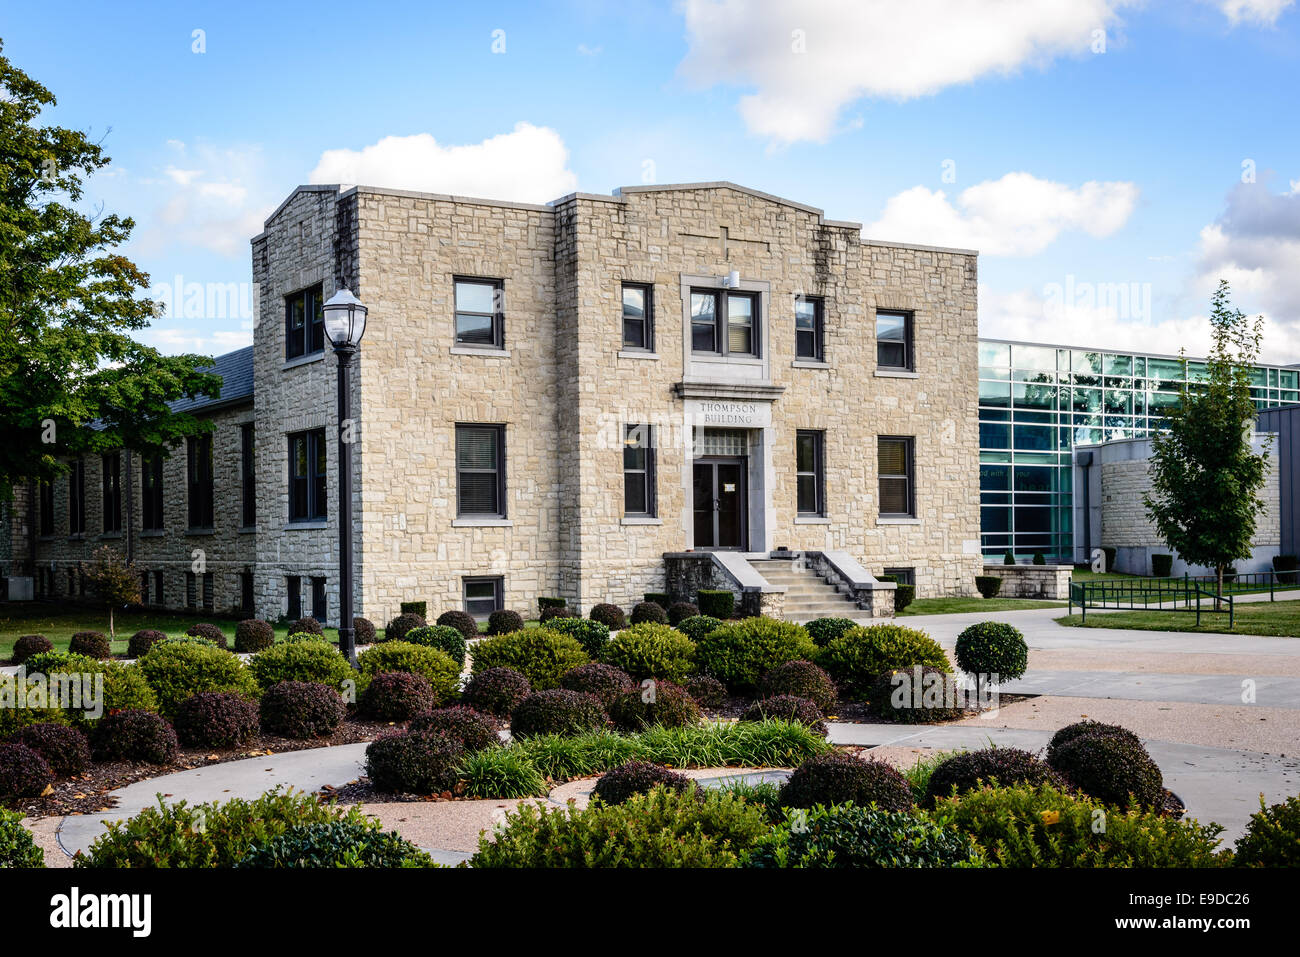 Thompson Building, College of the Ozarks (Hard Work U), Point Lookout, Missouri - Stock Image